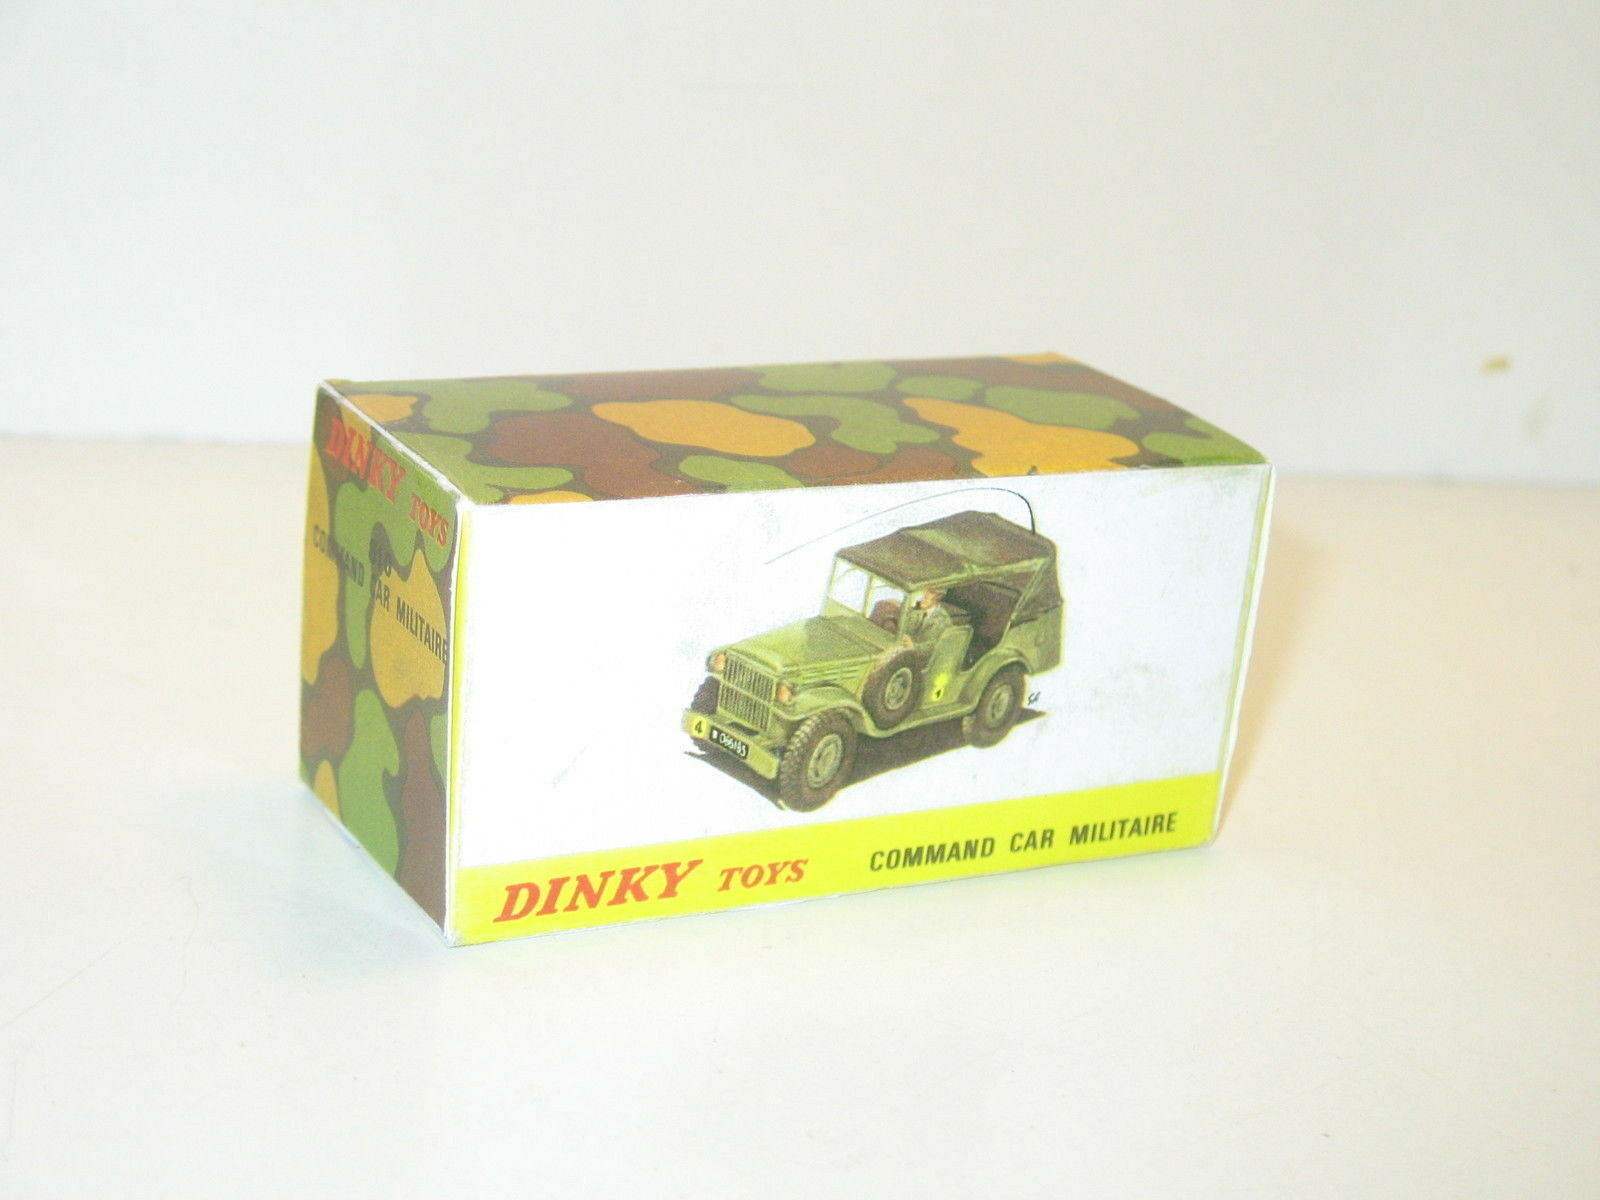 N30, box Command car dodge wc 56 military, bt repro DINKY toys ref 810